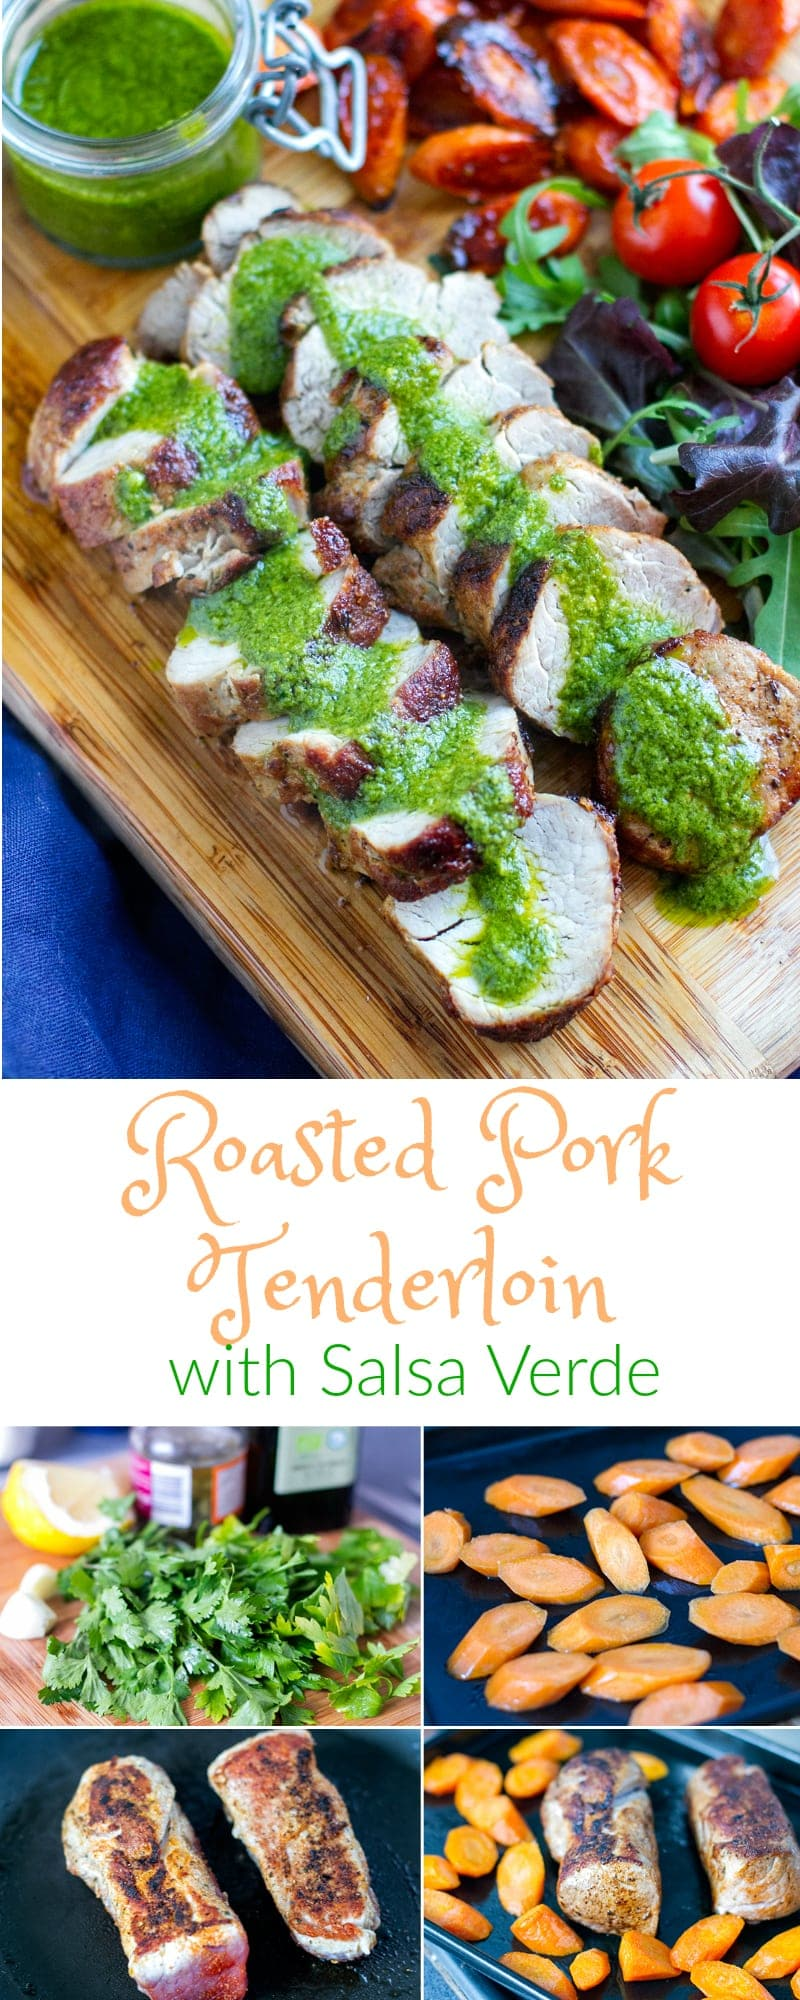 Roasted Pork Tenderloin With Salsa Verde & Balsamic Carrots - Low Carb, Paleo   Peace Love and Low Carb